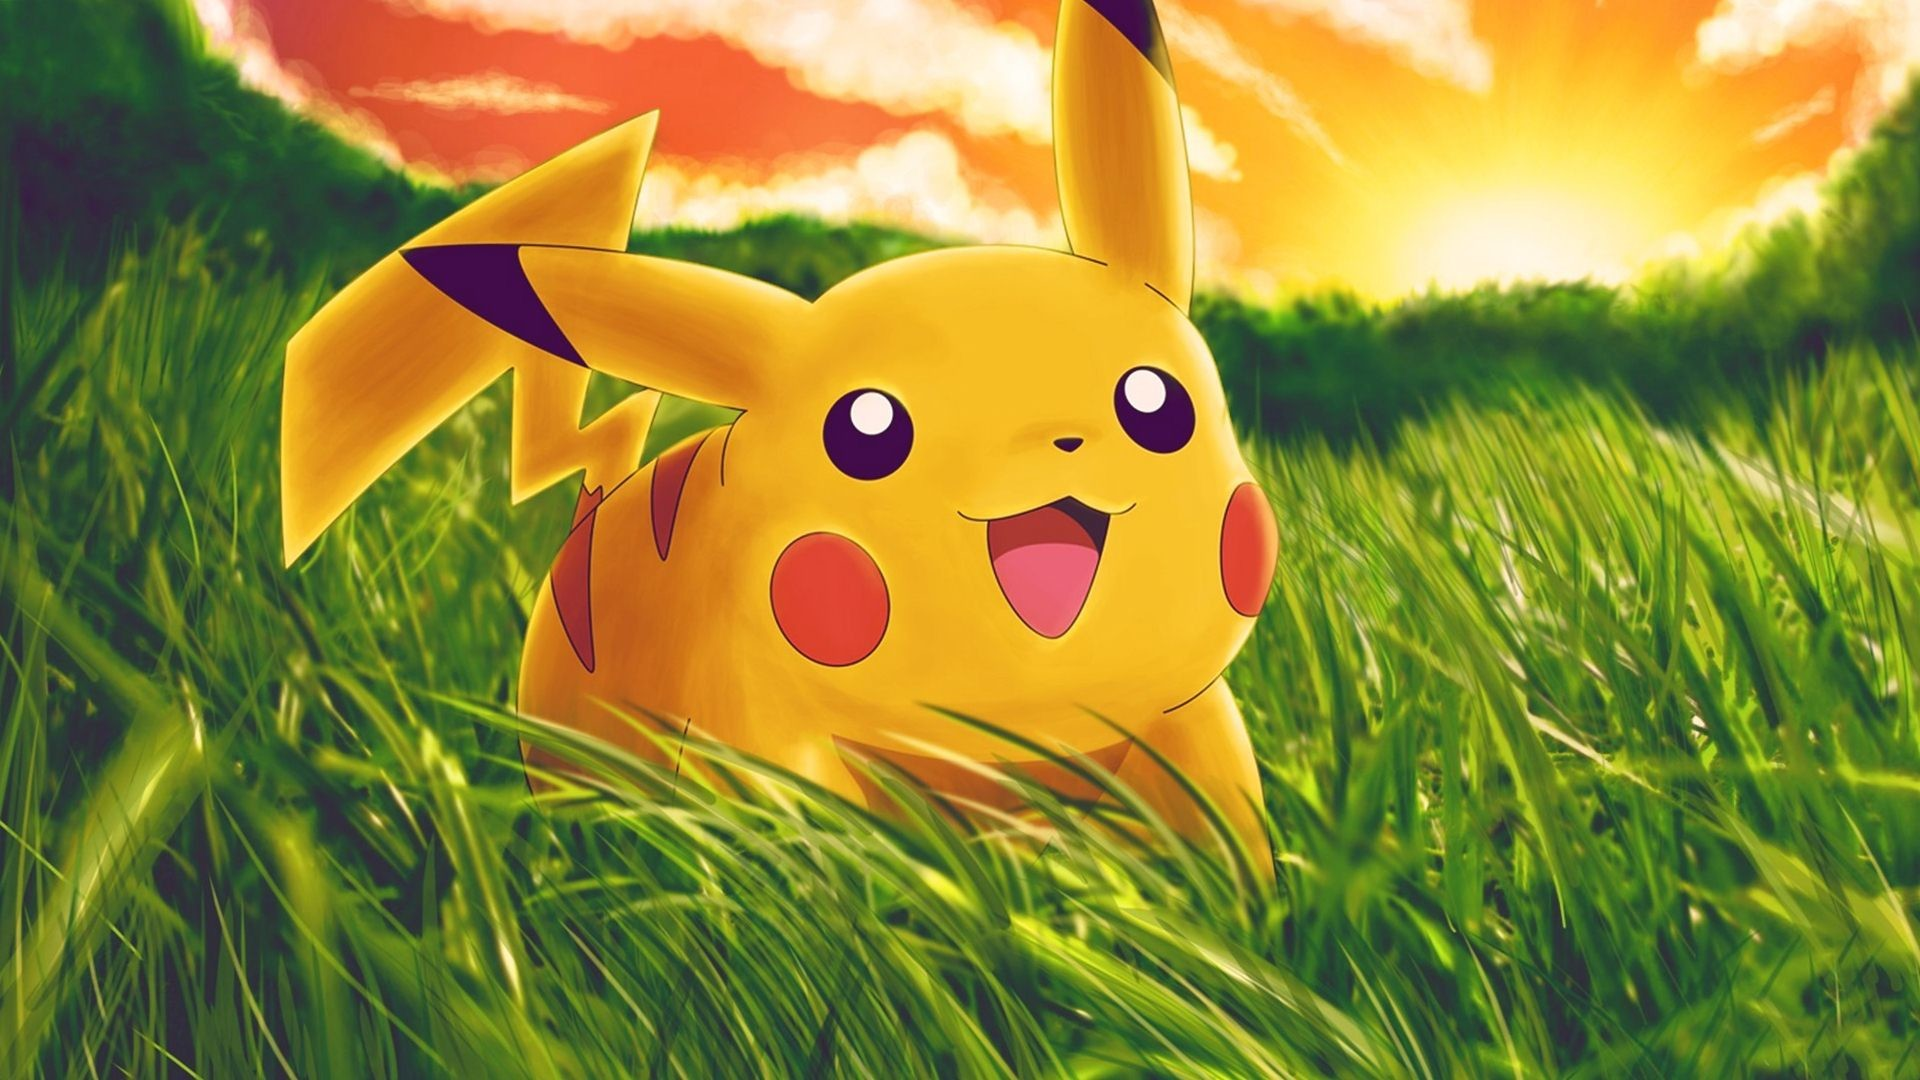 Cool Pikachu Wallpapers 77 Images